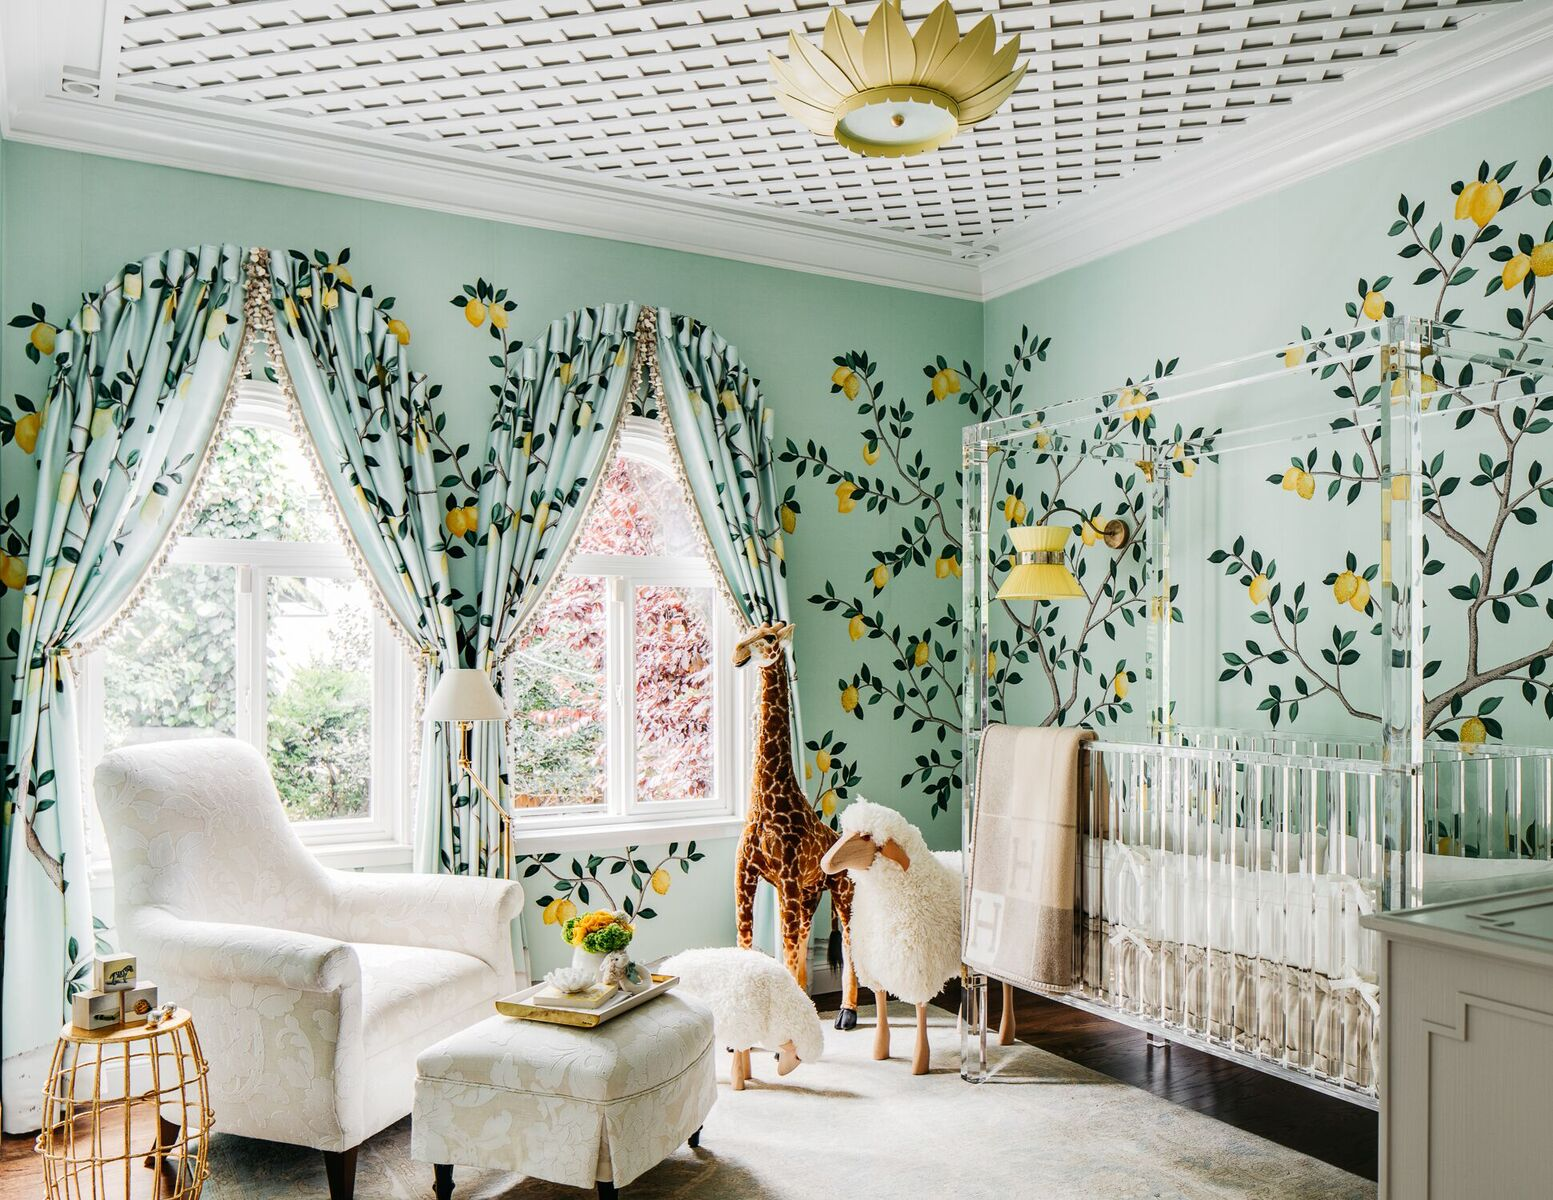 The youngest member of that fictional family lives in a luxurious nursery created by Dina Bandman. The designer crafted an infant's room that eschews pink and blue colors in favor of yellow and mint hues. High notes include a custom Lucite crib and a De Gournay wallpaper featuring lemon trees (some of fruit is hand-embellished with sequins).